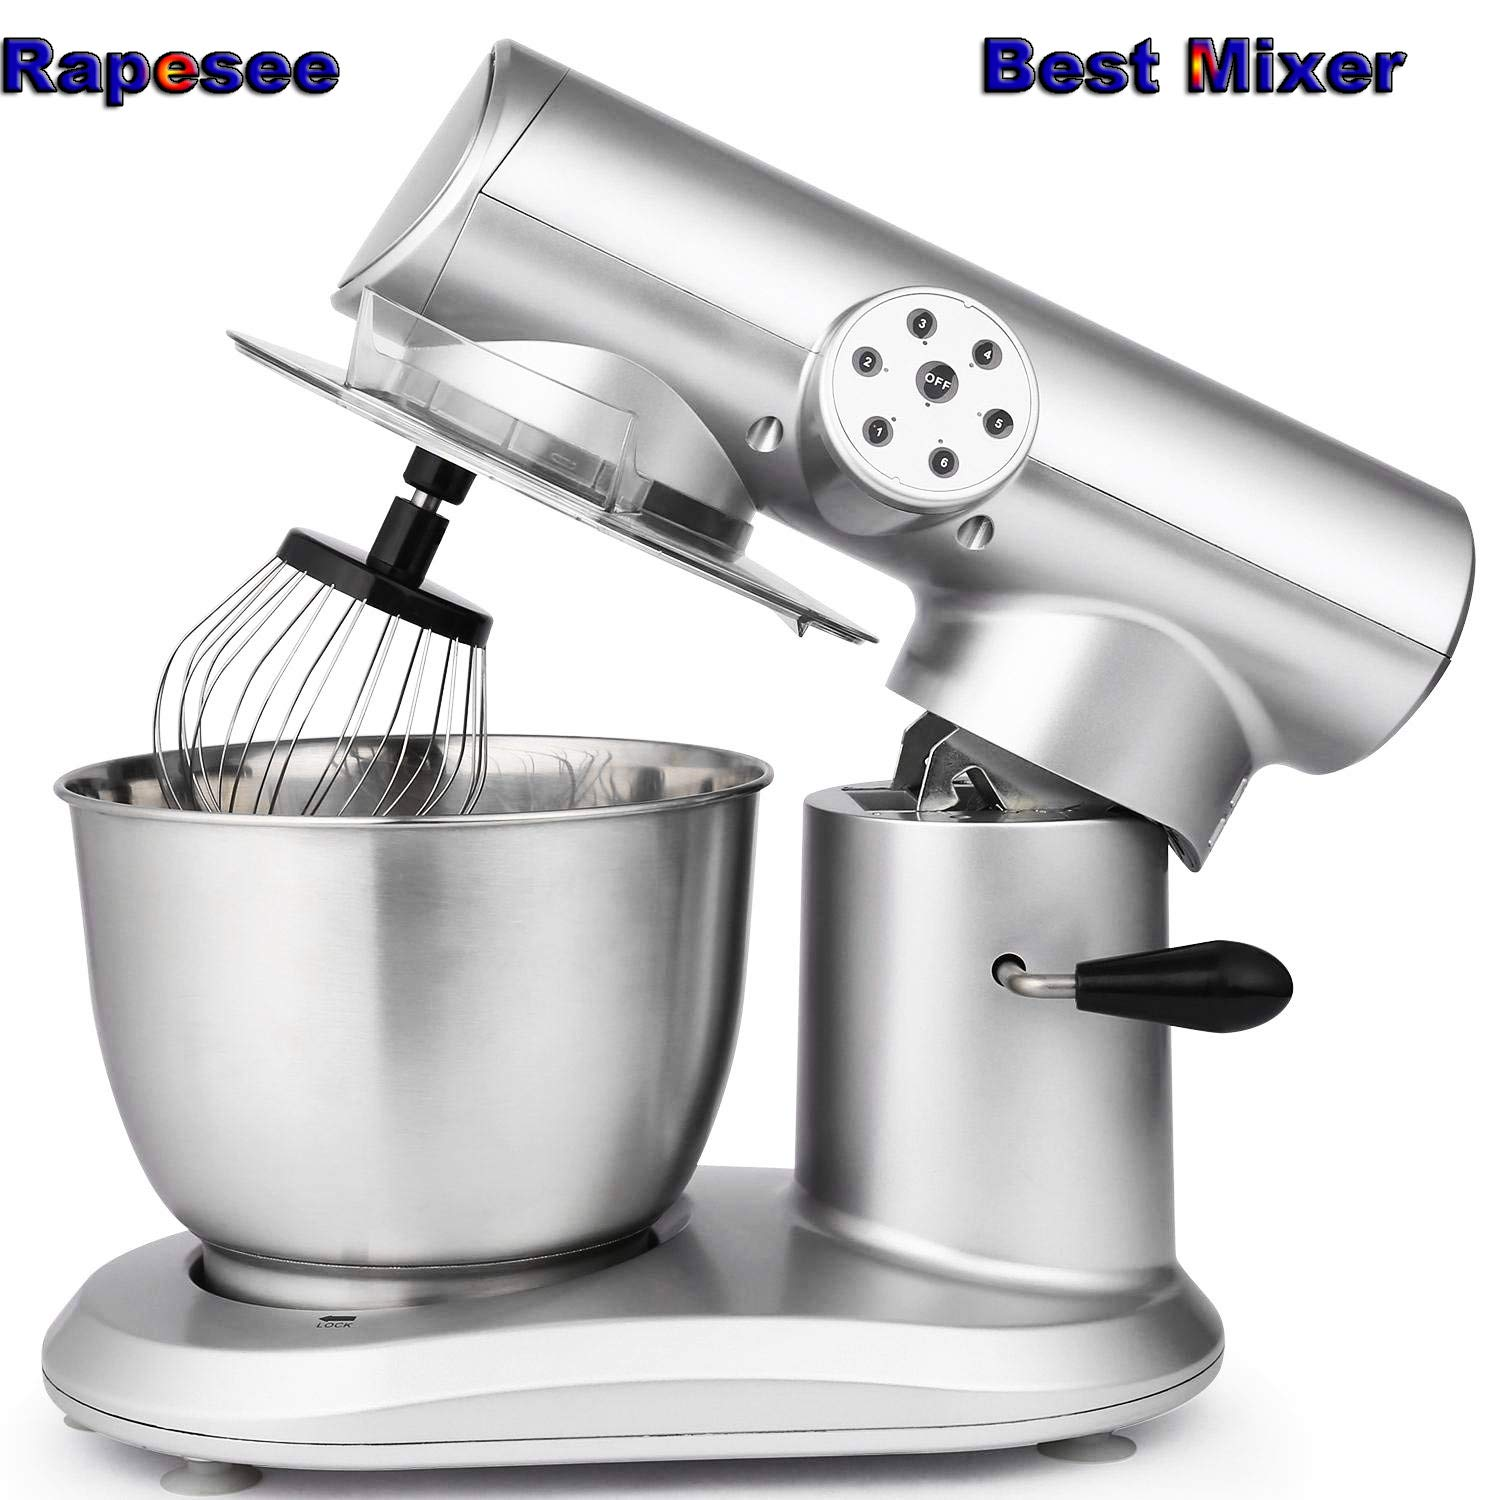 Rapesee Stainless Steel Stand Mixer, 6 Speed 120V 650W Electric Stand up Cake Baking Mixture, Professional Kitchen Food Mixture Machine with 5.5L Bowel, Wire Whip, Dough Hook & Flexible Edge Beater